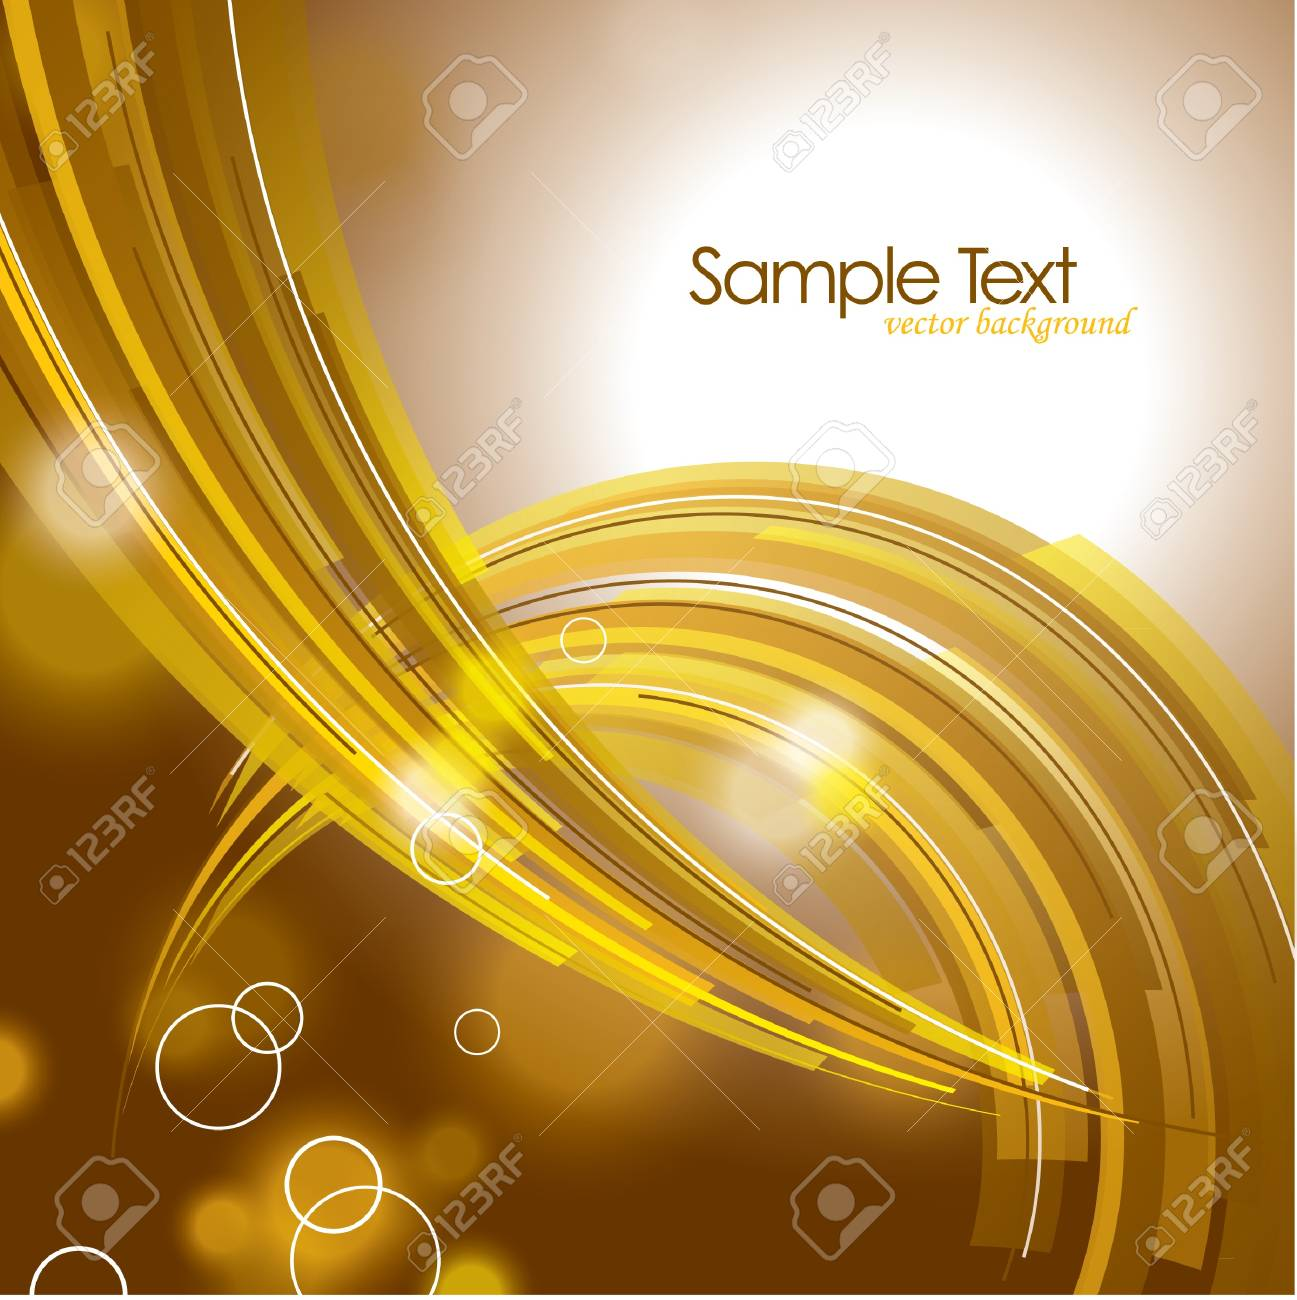 Abstract Background  Vector Illustration Stock Vector - 14372069